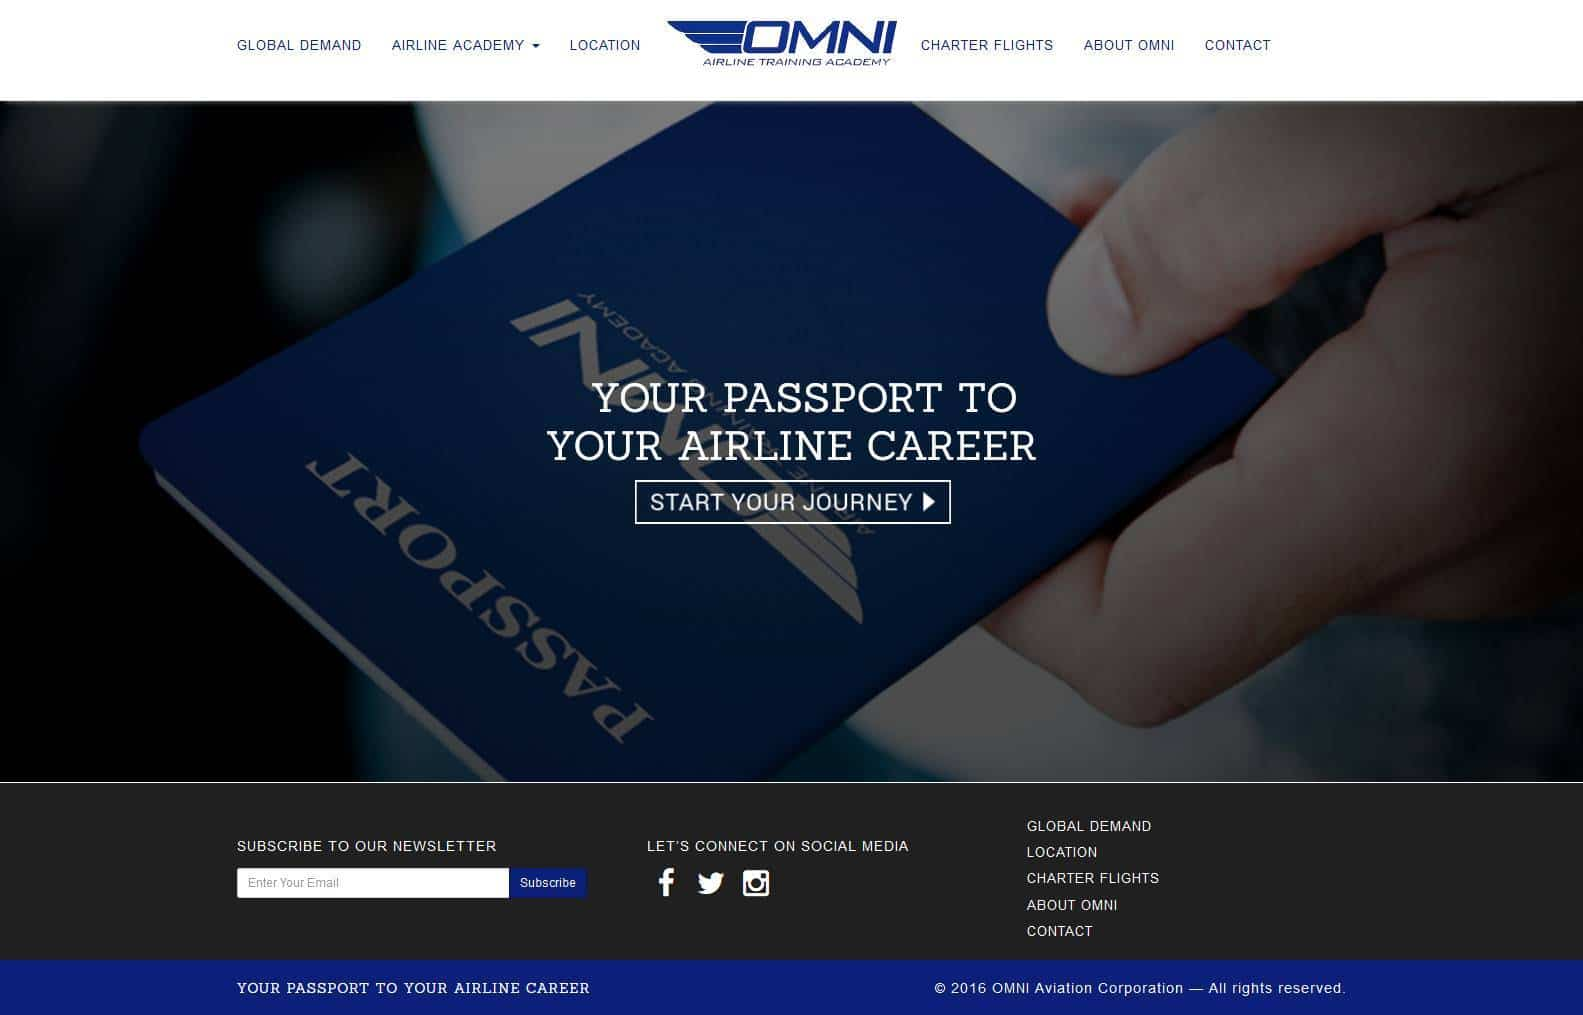 Partner Omni Aviation Corporation